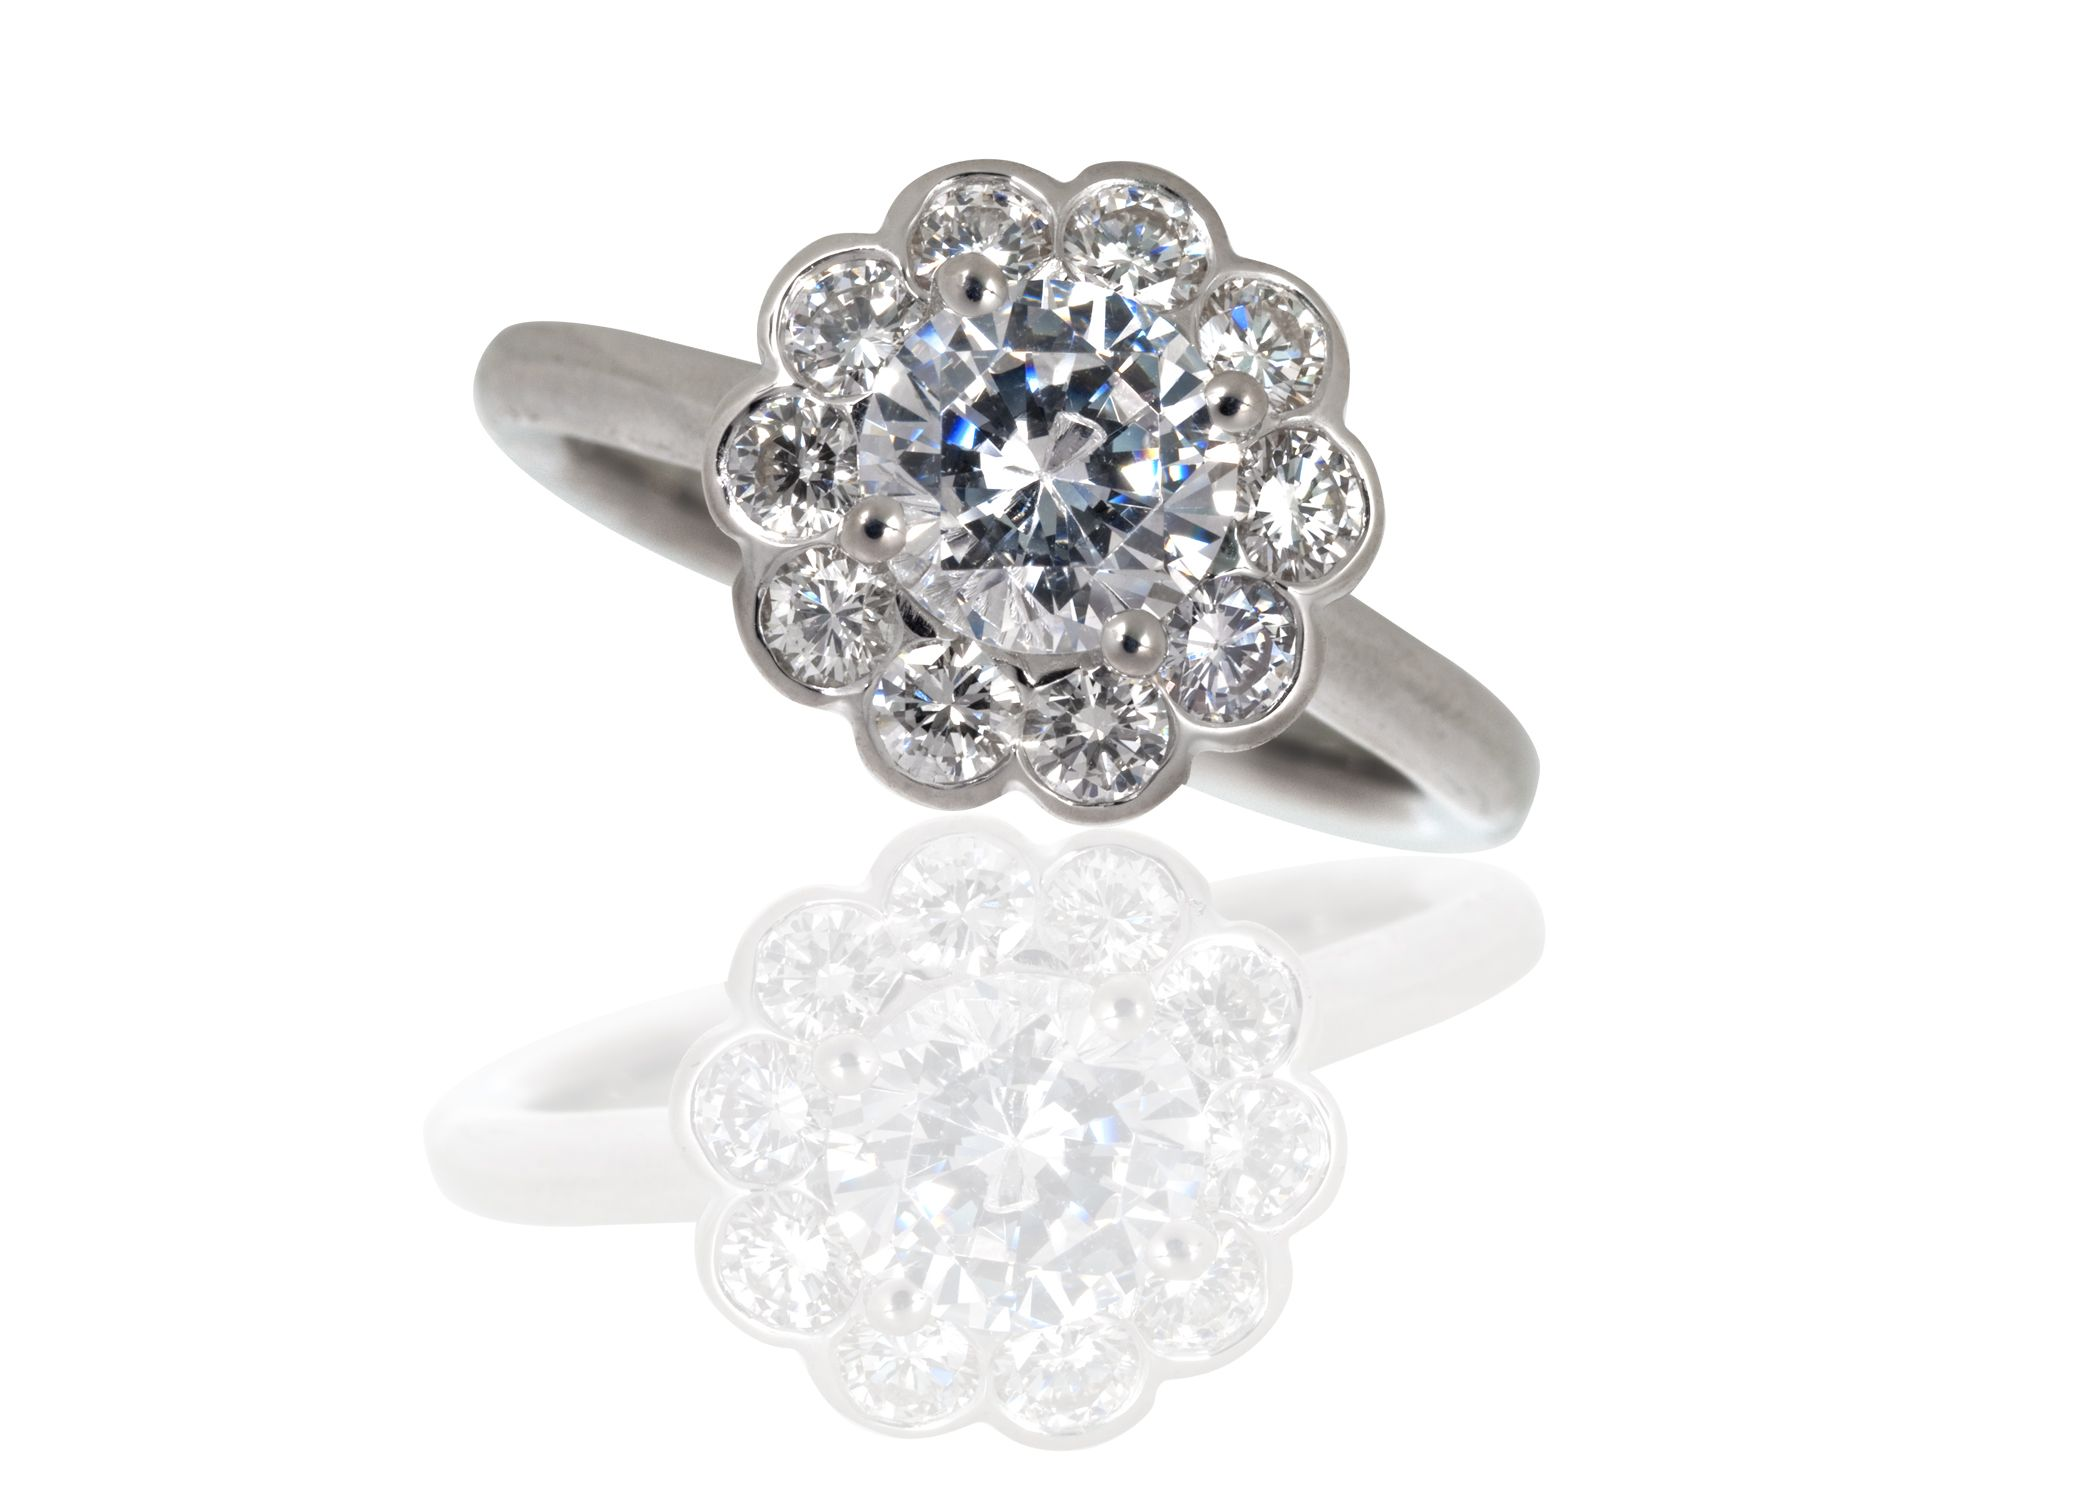 pin cluster jewelry rings pinterest daisy engagement diamond ring